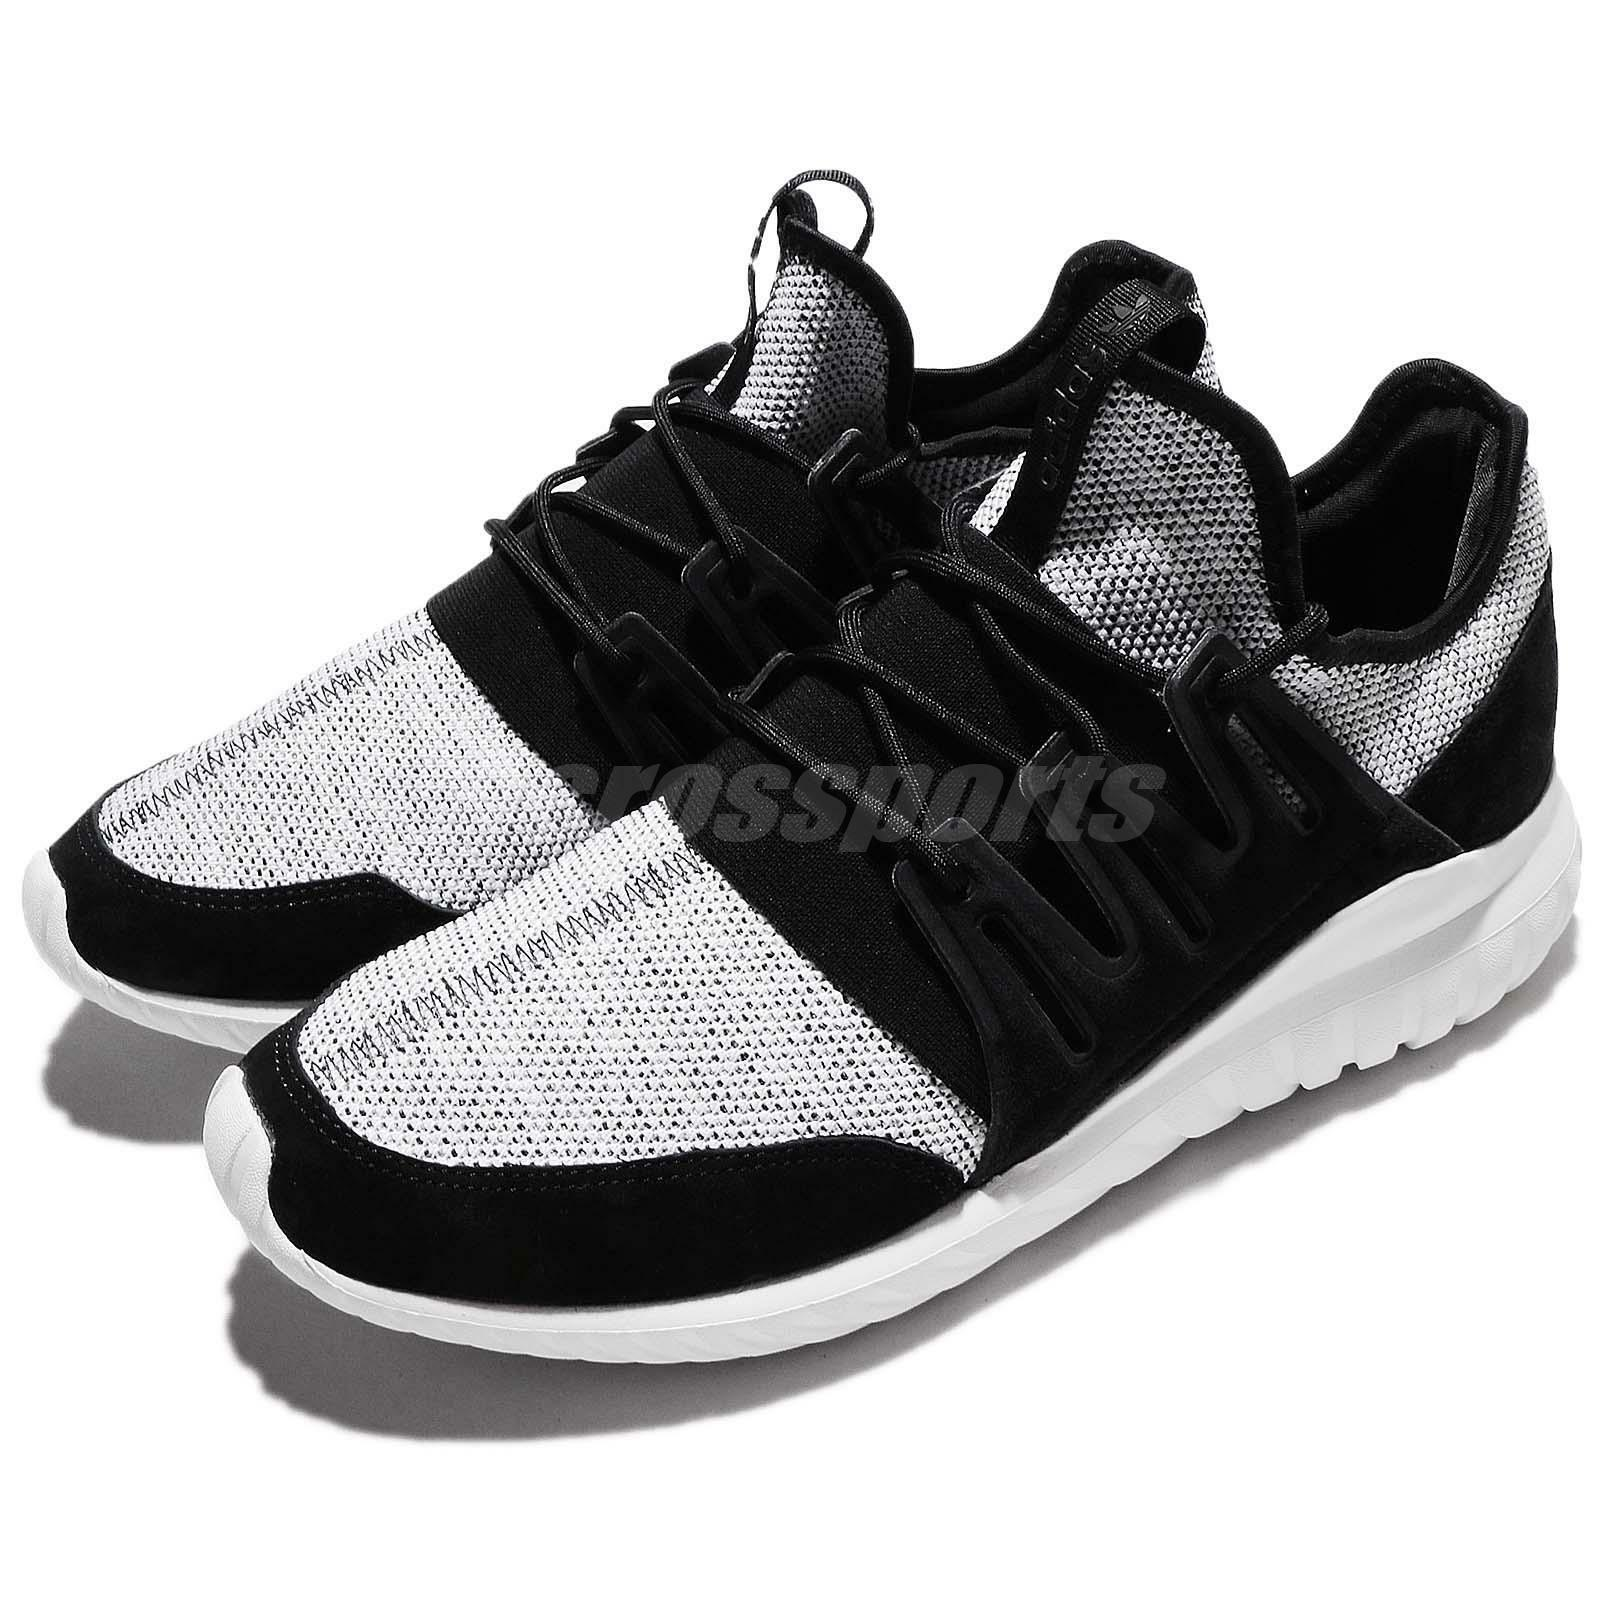 Adidas NMD_R1 homme  fonctionnement Trainers chaussures Taille US 7-11